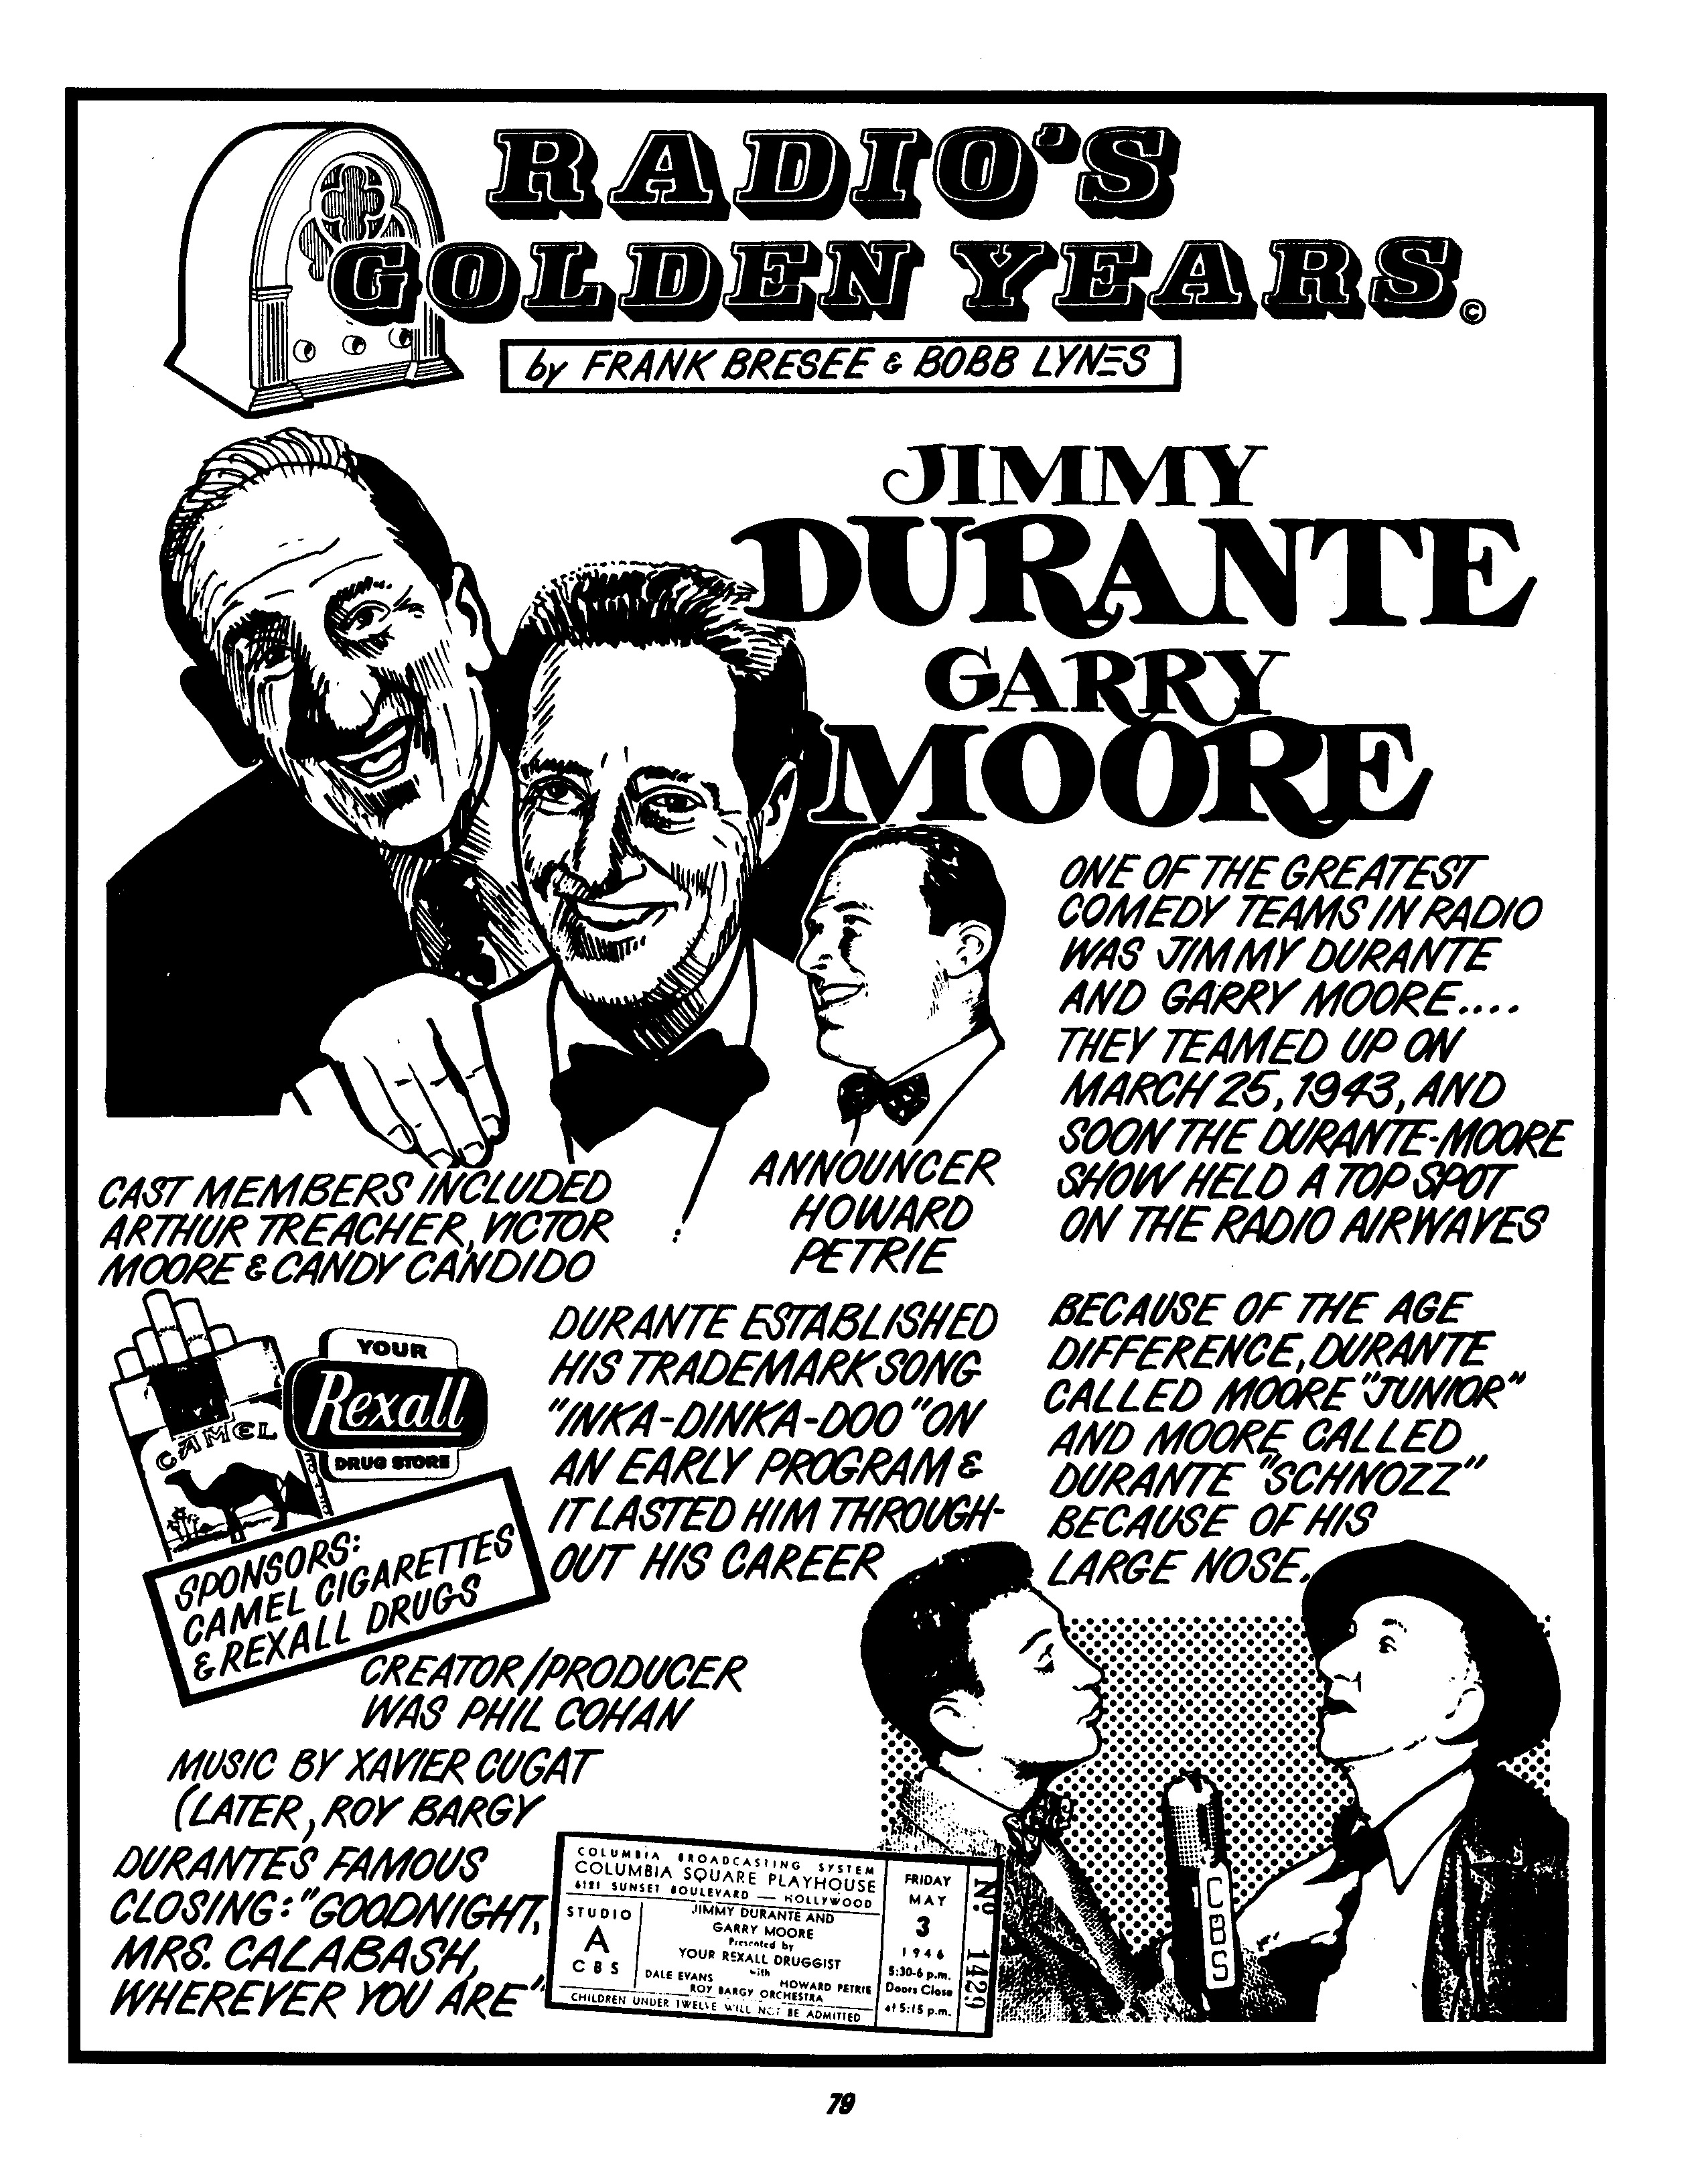 Jimmy Durante And Garry Moore